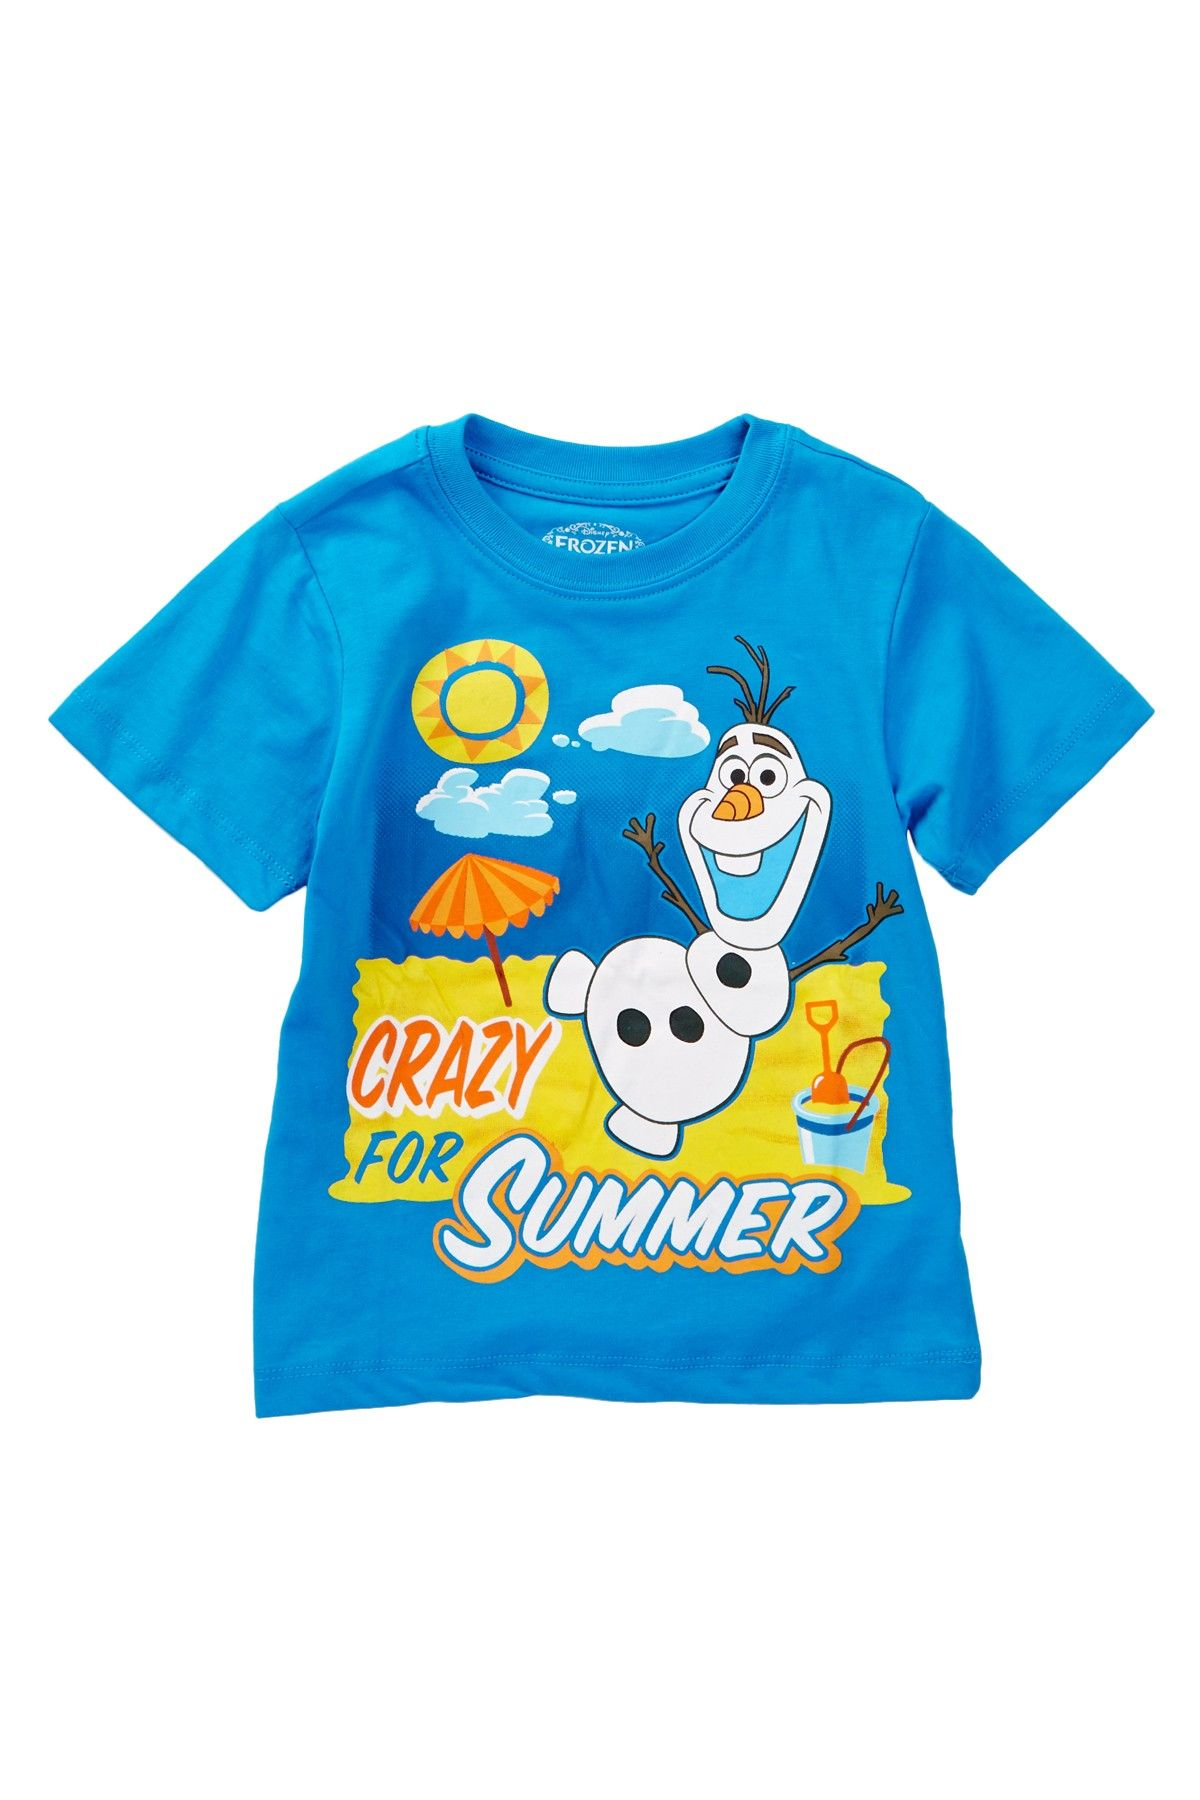 Baby Frozen Olaf Crazy for Summer Tee (Toddler